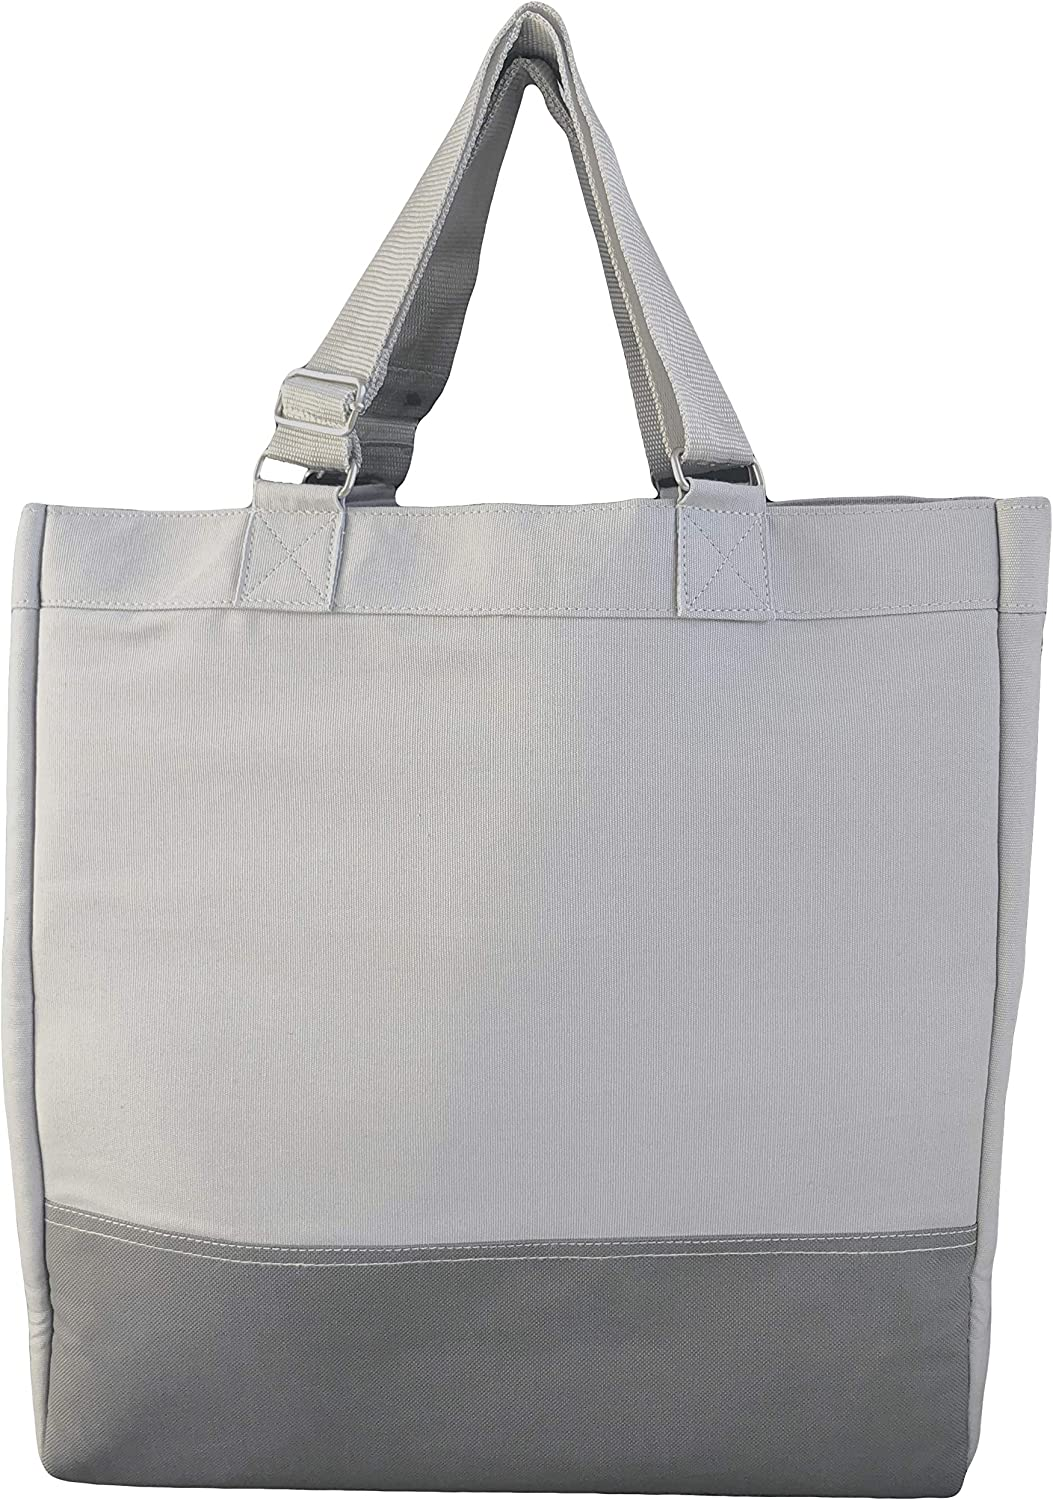 Cotton canvas carryall Compact tote with storage sleeve MARKET BAG with SLEEVE environment friendly bag